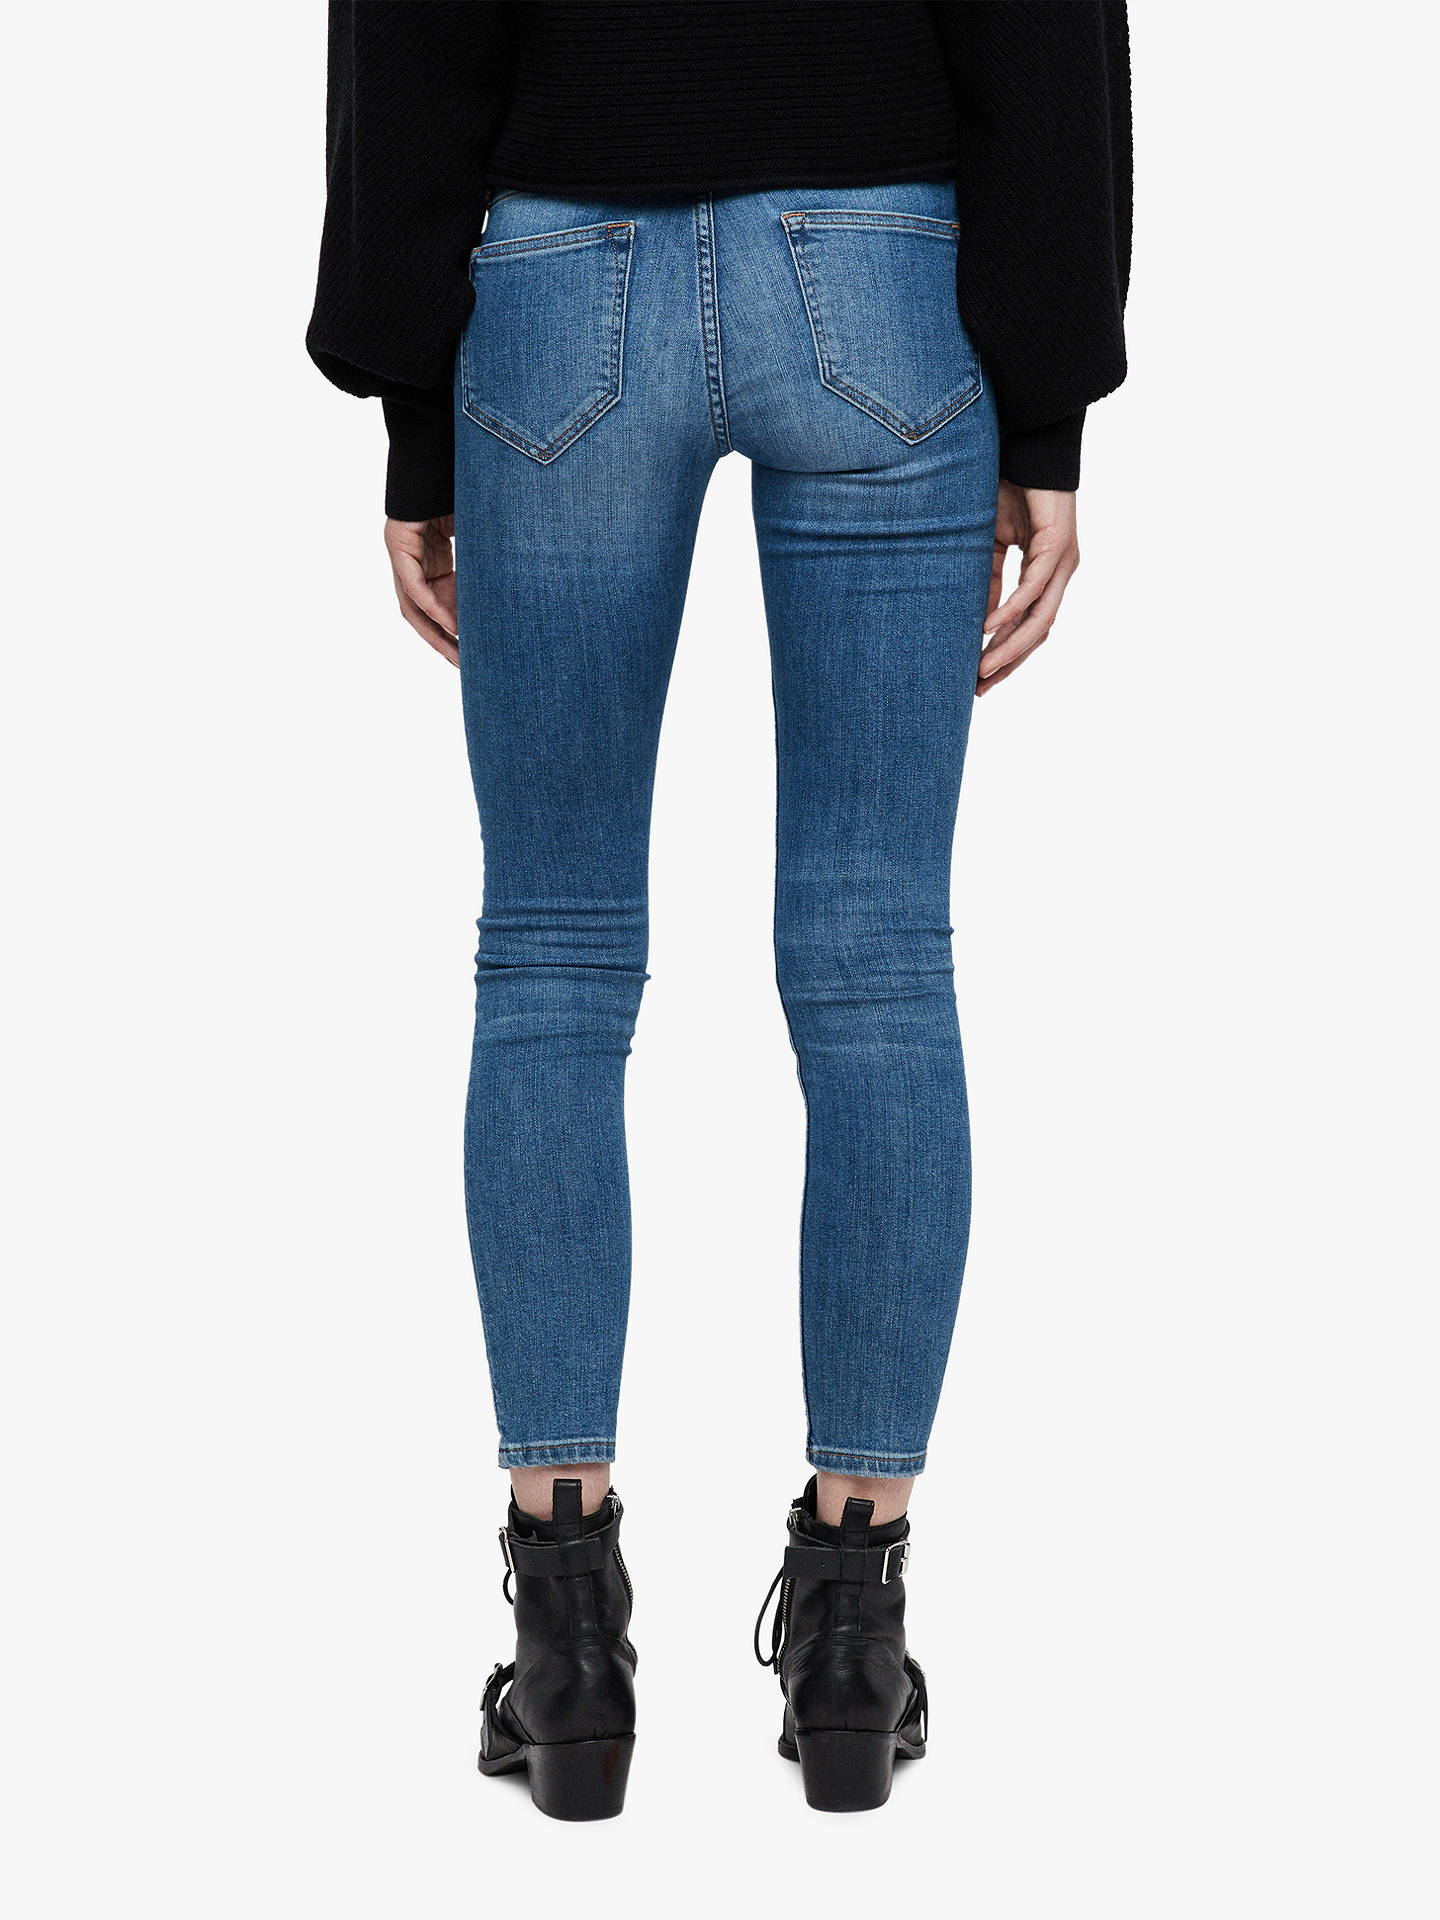 BuyAllSaints Mast Destroys Ankle Skinny Jeans, Mid Indigo Blue, 28 Online at johnlewis.com